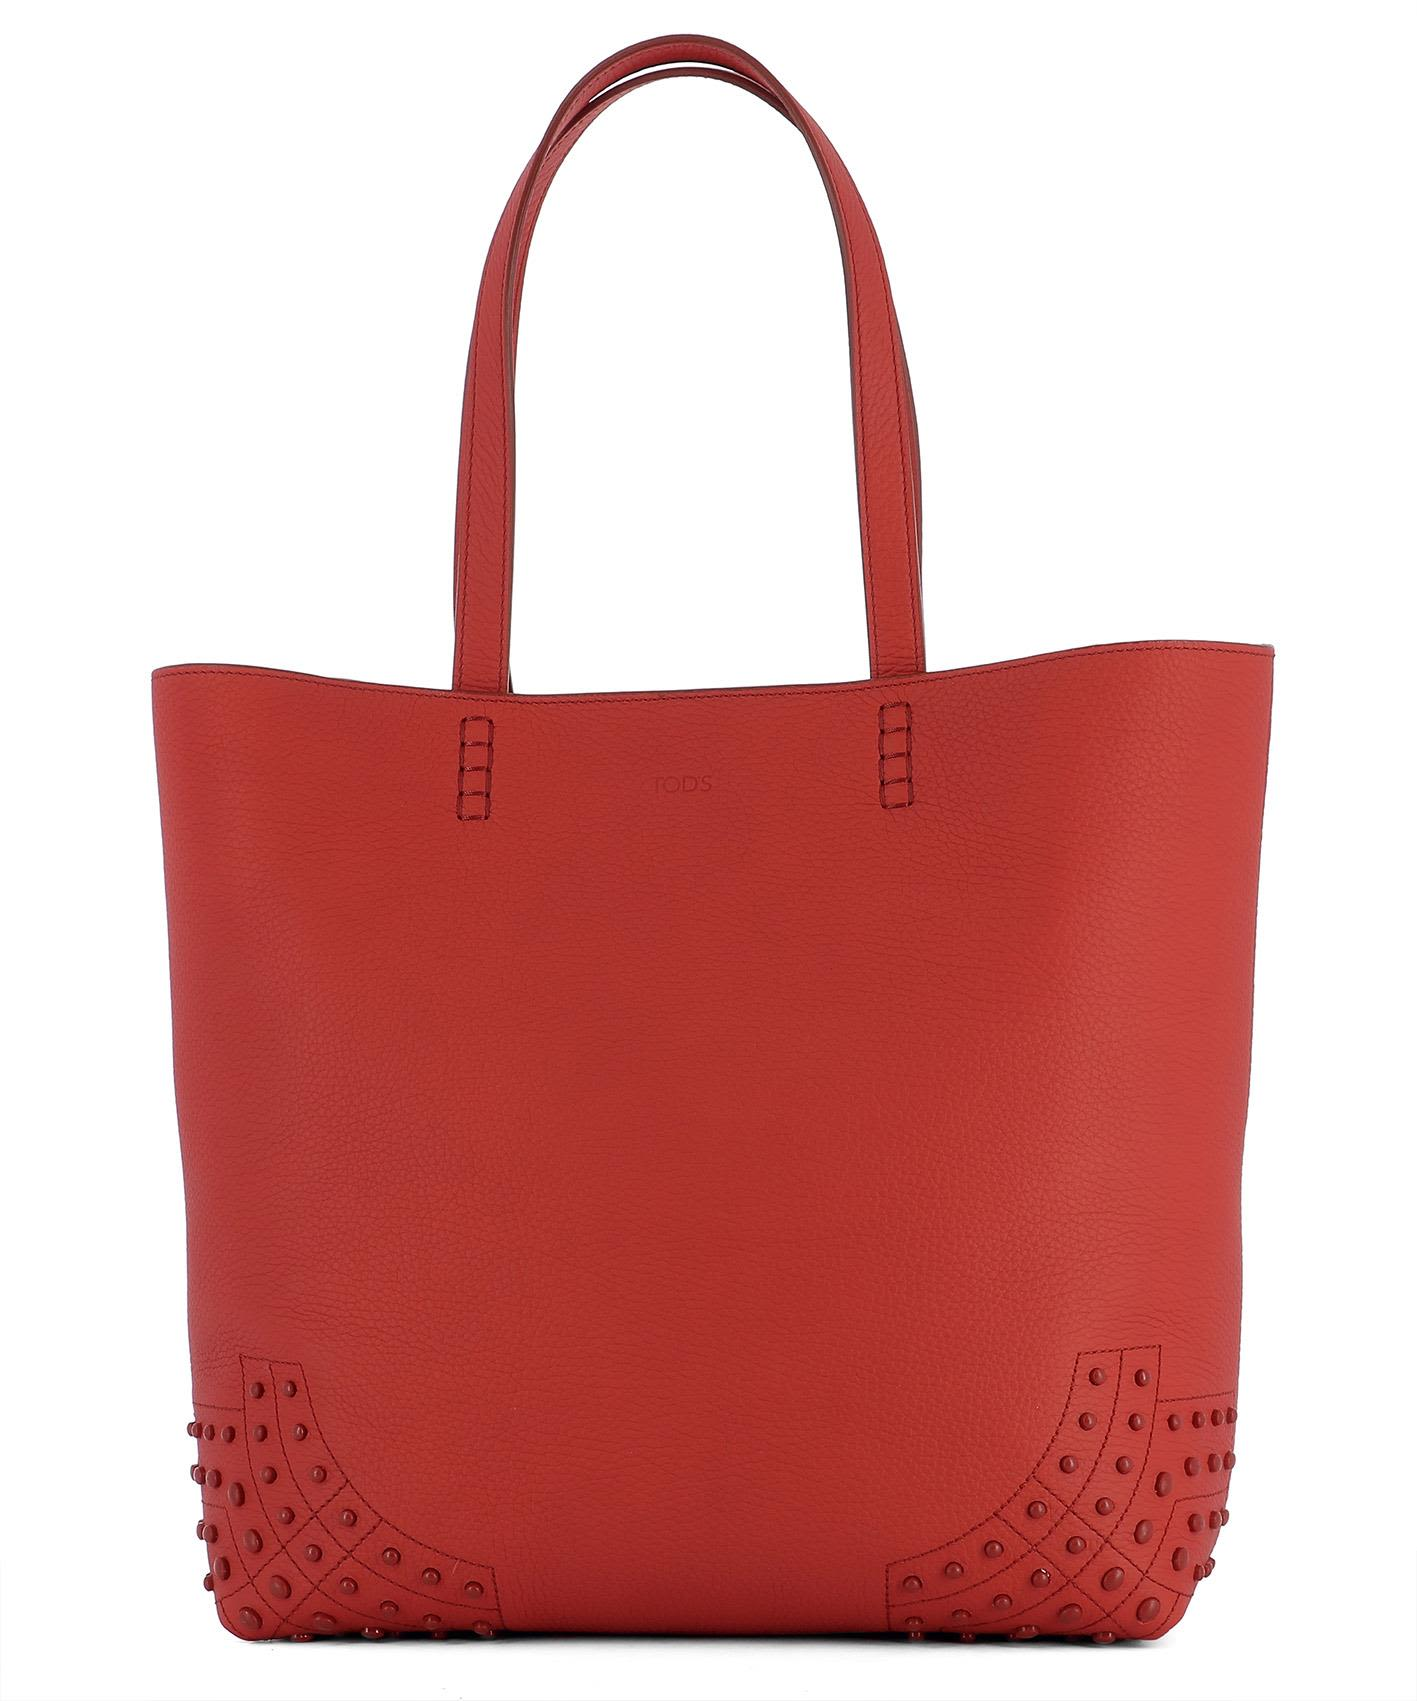 eefda9b1ce italist | Best price in the market for Tod's Red Leather Shoulder ...